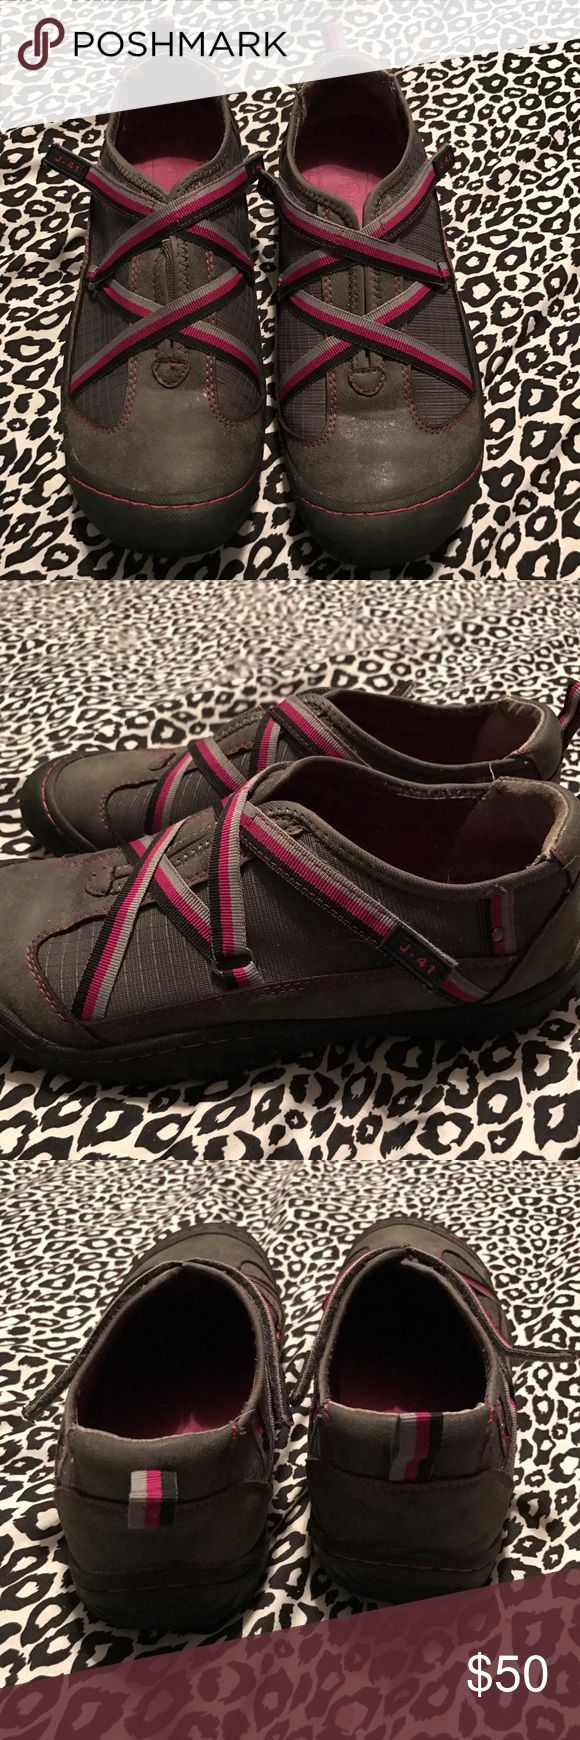 J-41 shoes No wear on bottom just dirty on bottom. Excellent condition top. Entire shoe excellent condition. Very comfortable and waterproof. jeep Shoes